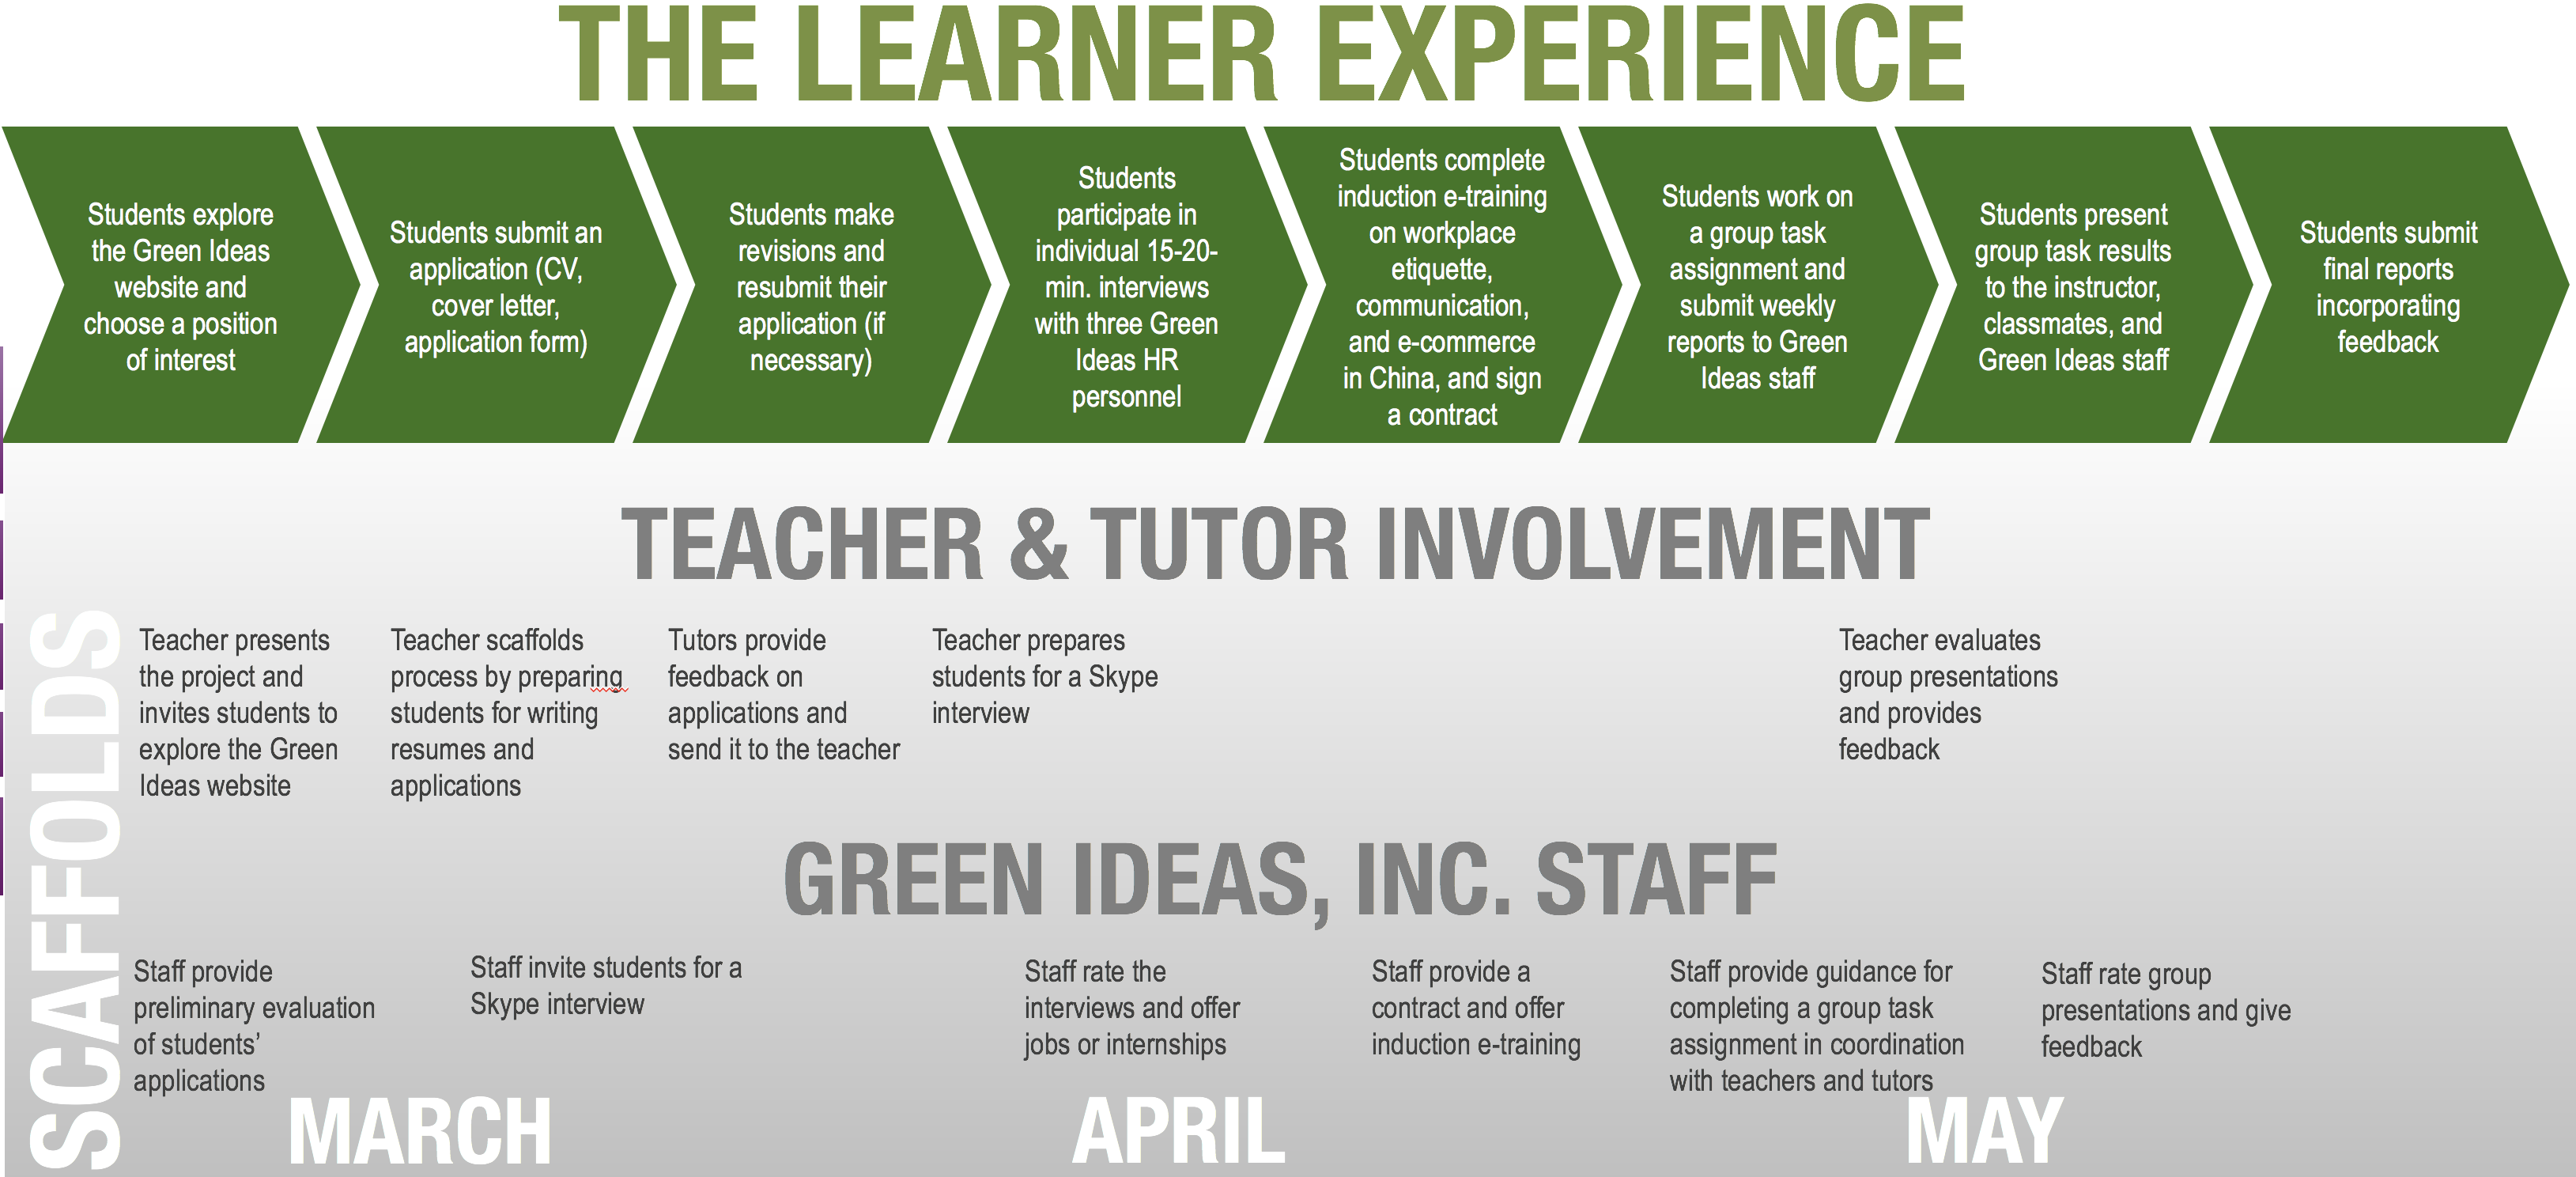 The different phases in the learner experience of the simulation.